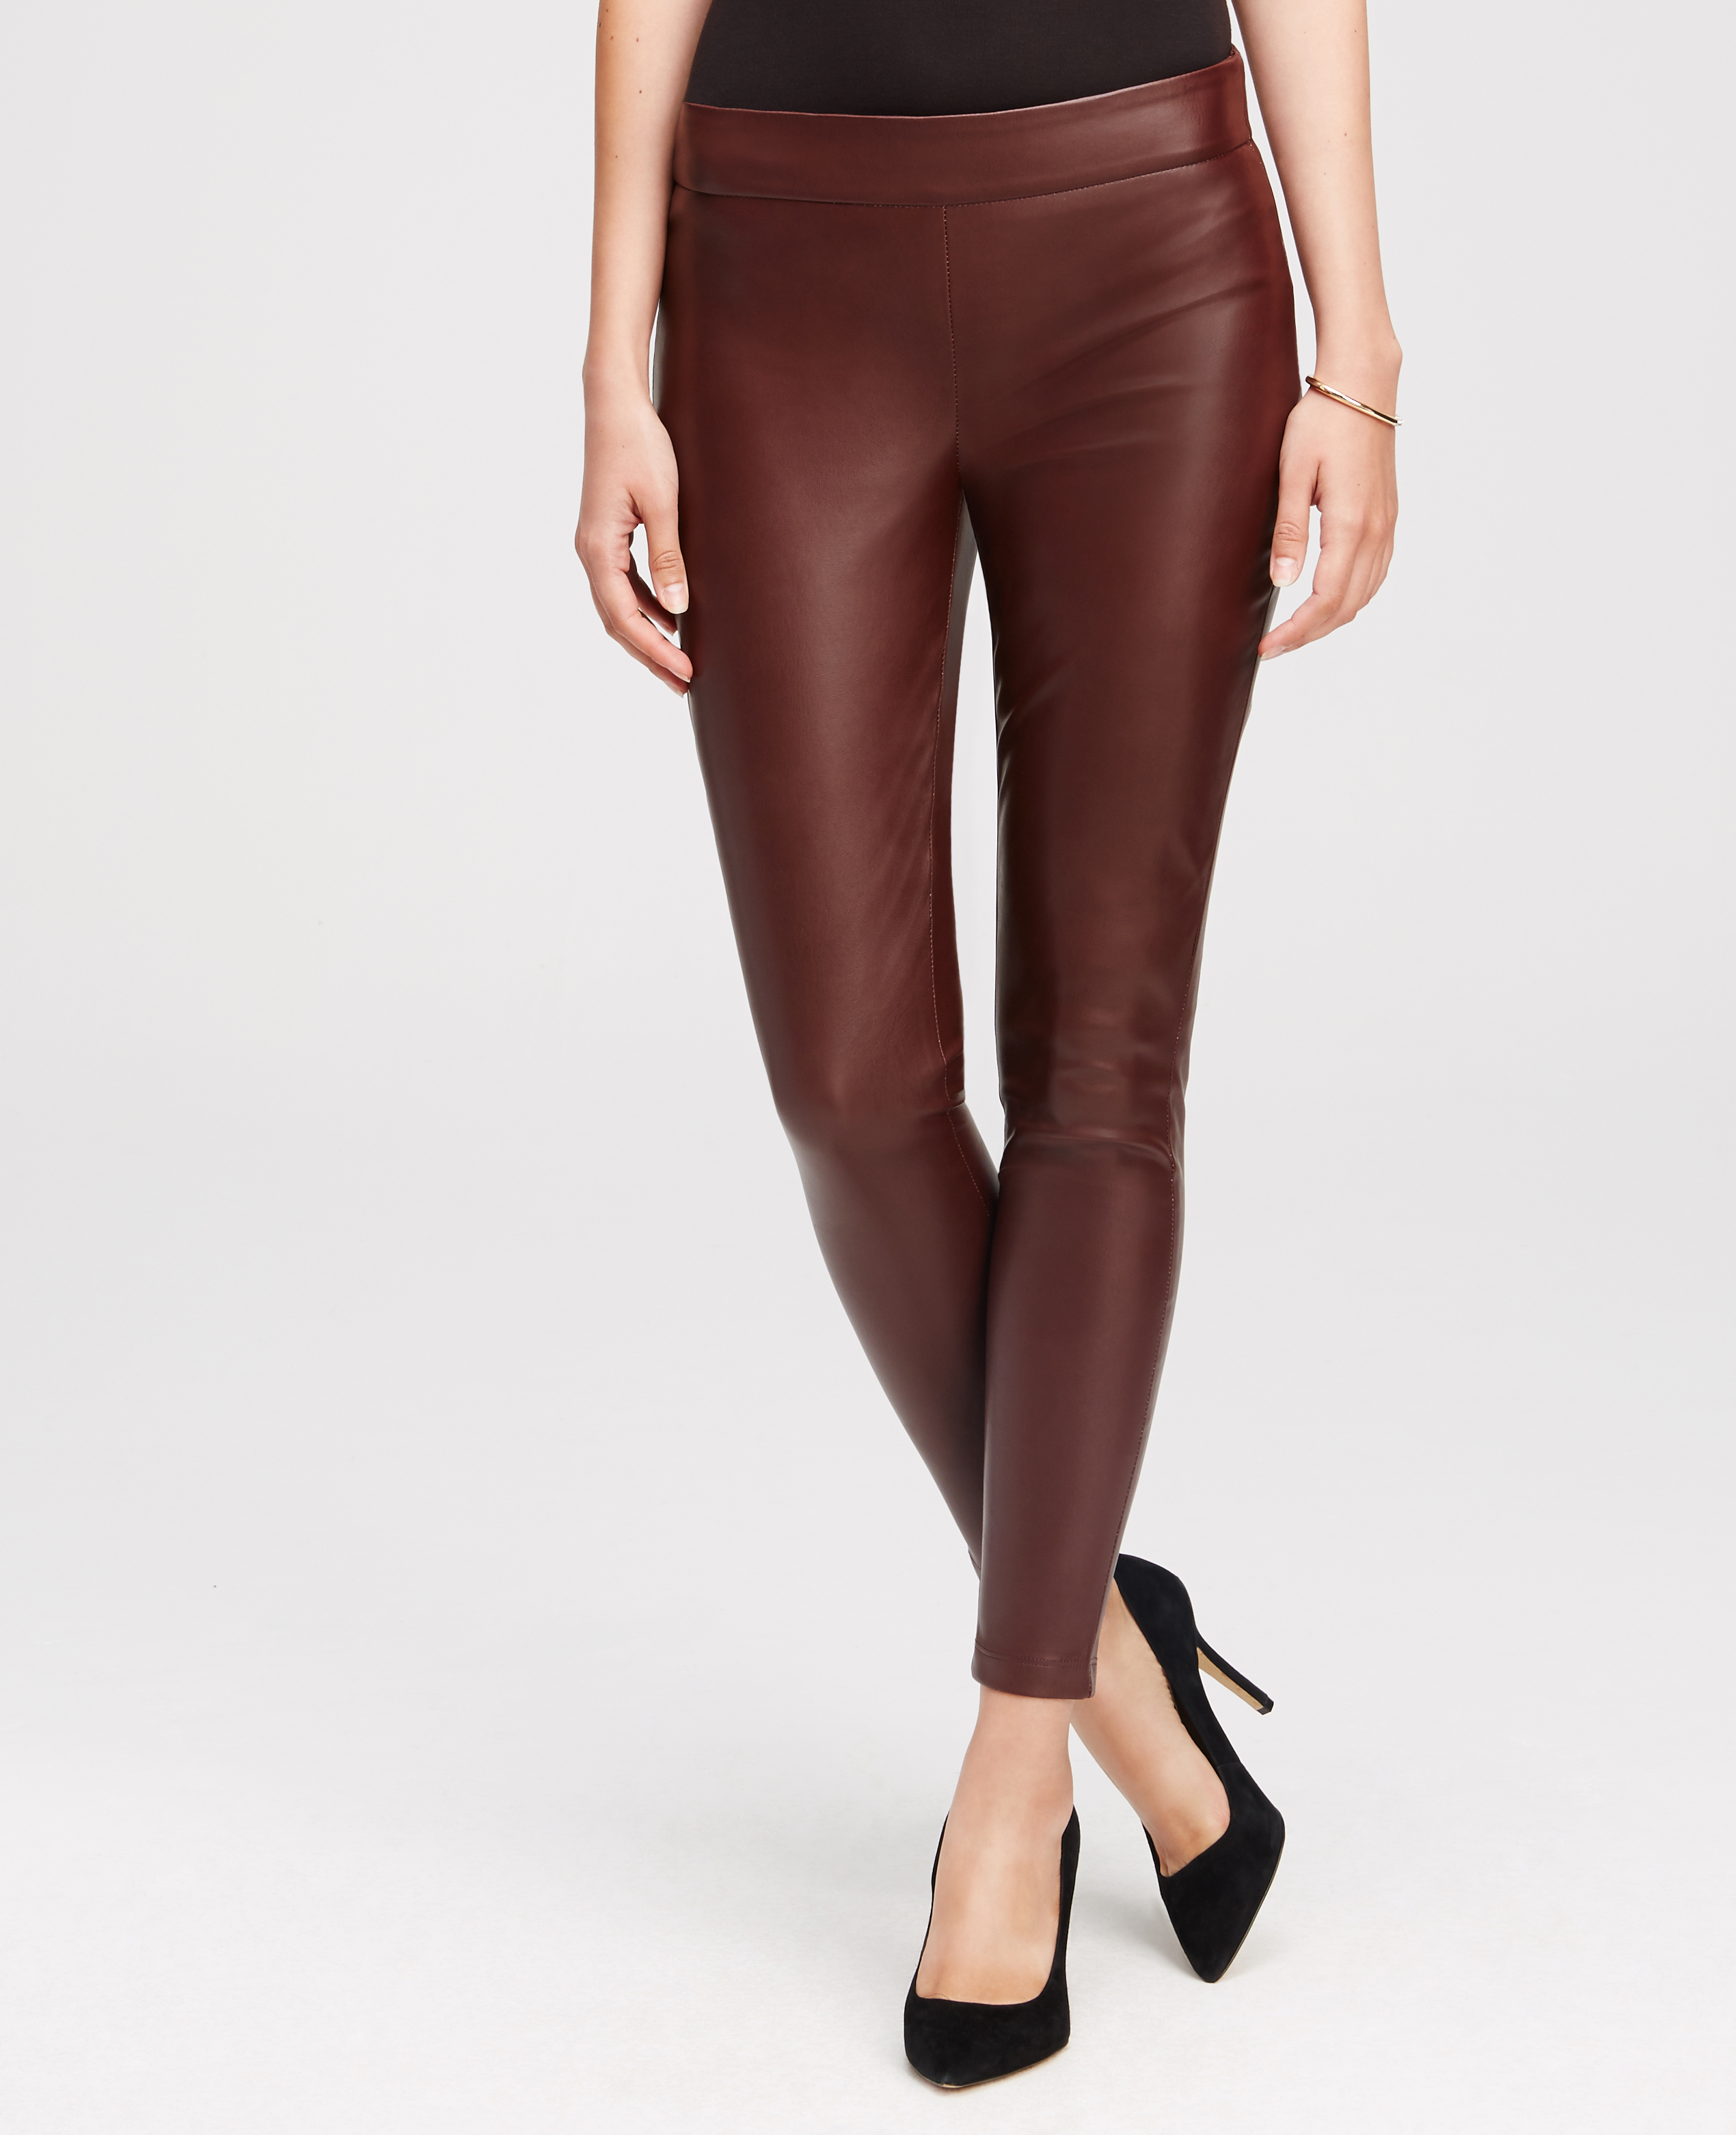 Faux Leather Leggings Are a Sexy Yet Refined Leg Fashion Choice. A pair of faux leather leggings gives you a genteel fashion look that only they can provide. With so many styles available, creating looks from fashion sexy to fashion refined and everything inbetween is easily possible.